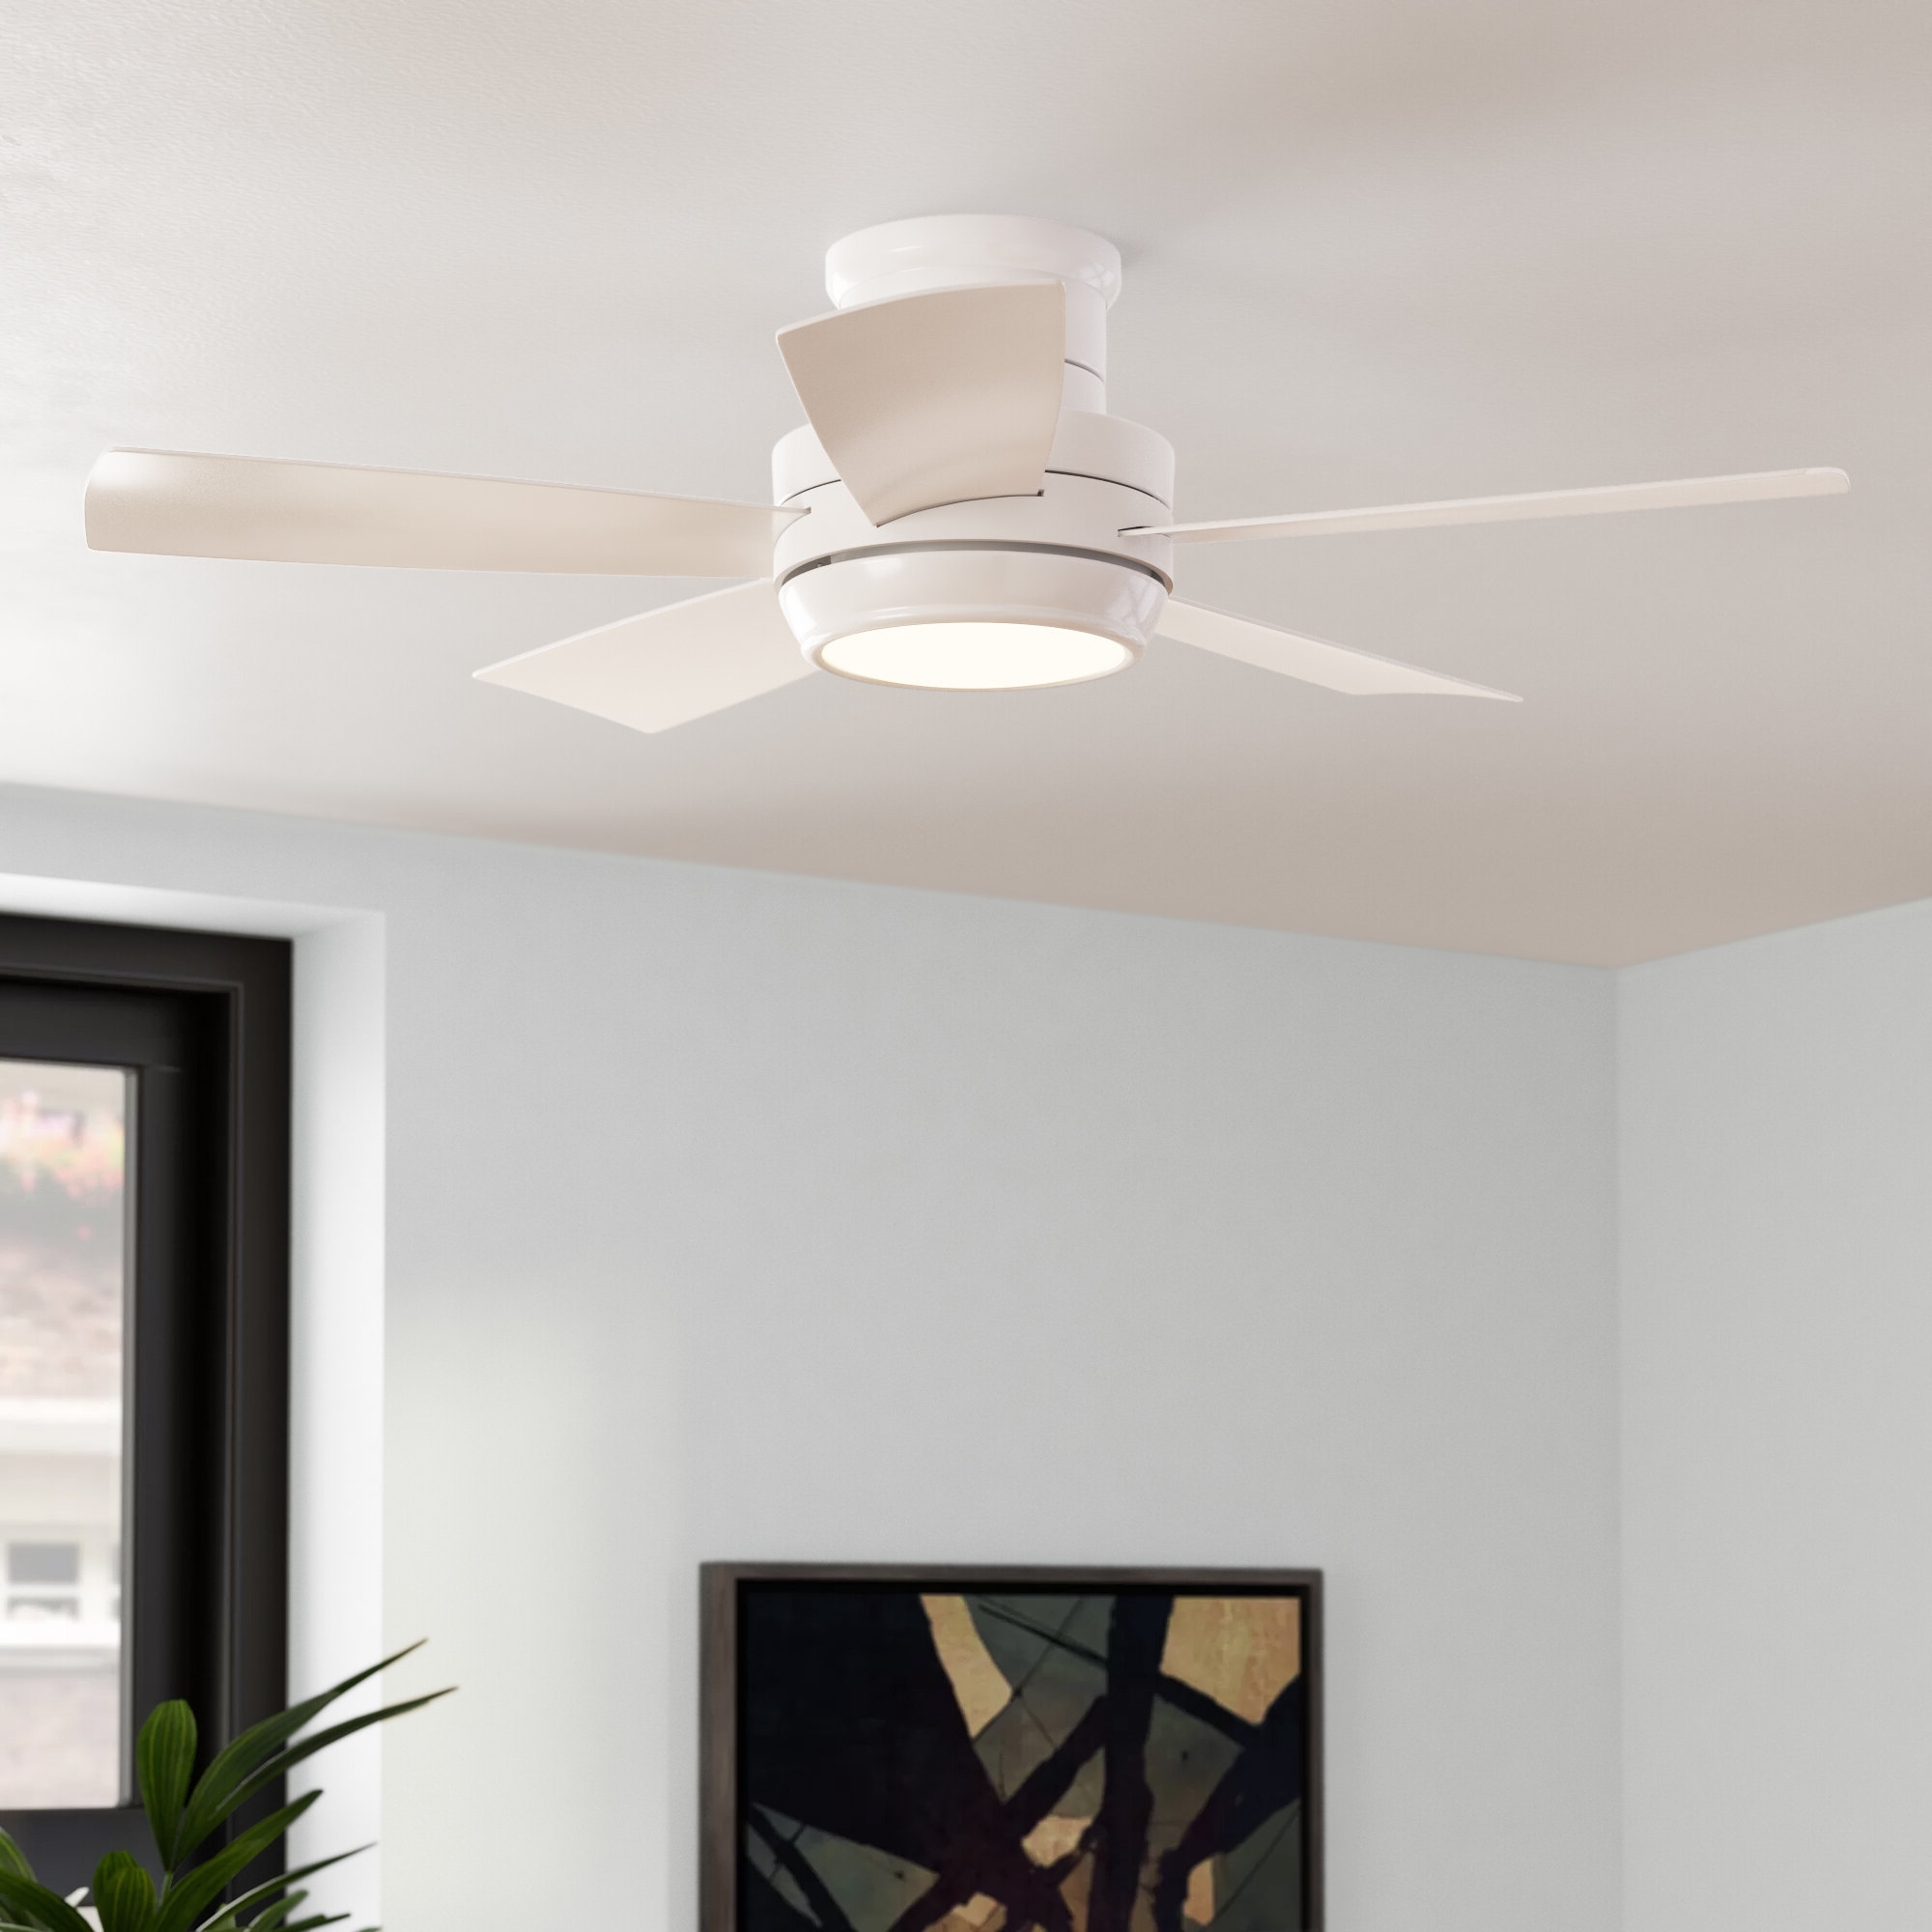 "44"" Cedarton Hugger 5 Blade Led Ceiling Fan, Light Kit Included Throughout Newest Cedarton 5 Blade Led Ceiling Fans (View 5 of 20)"